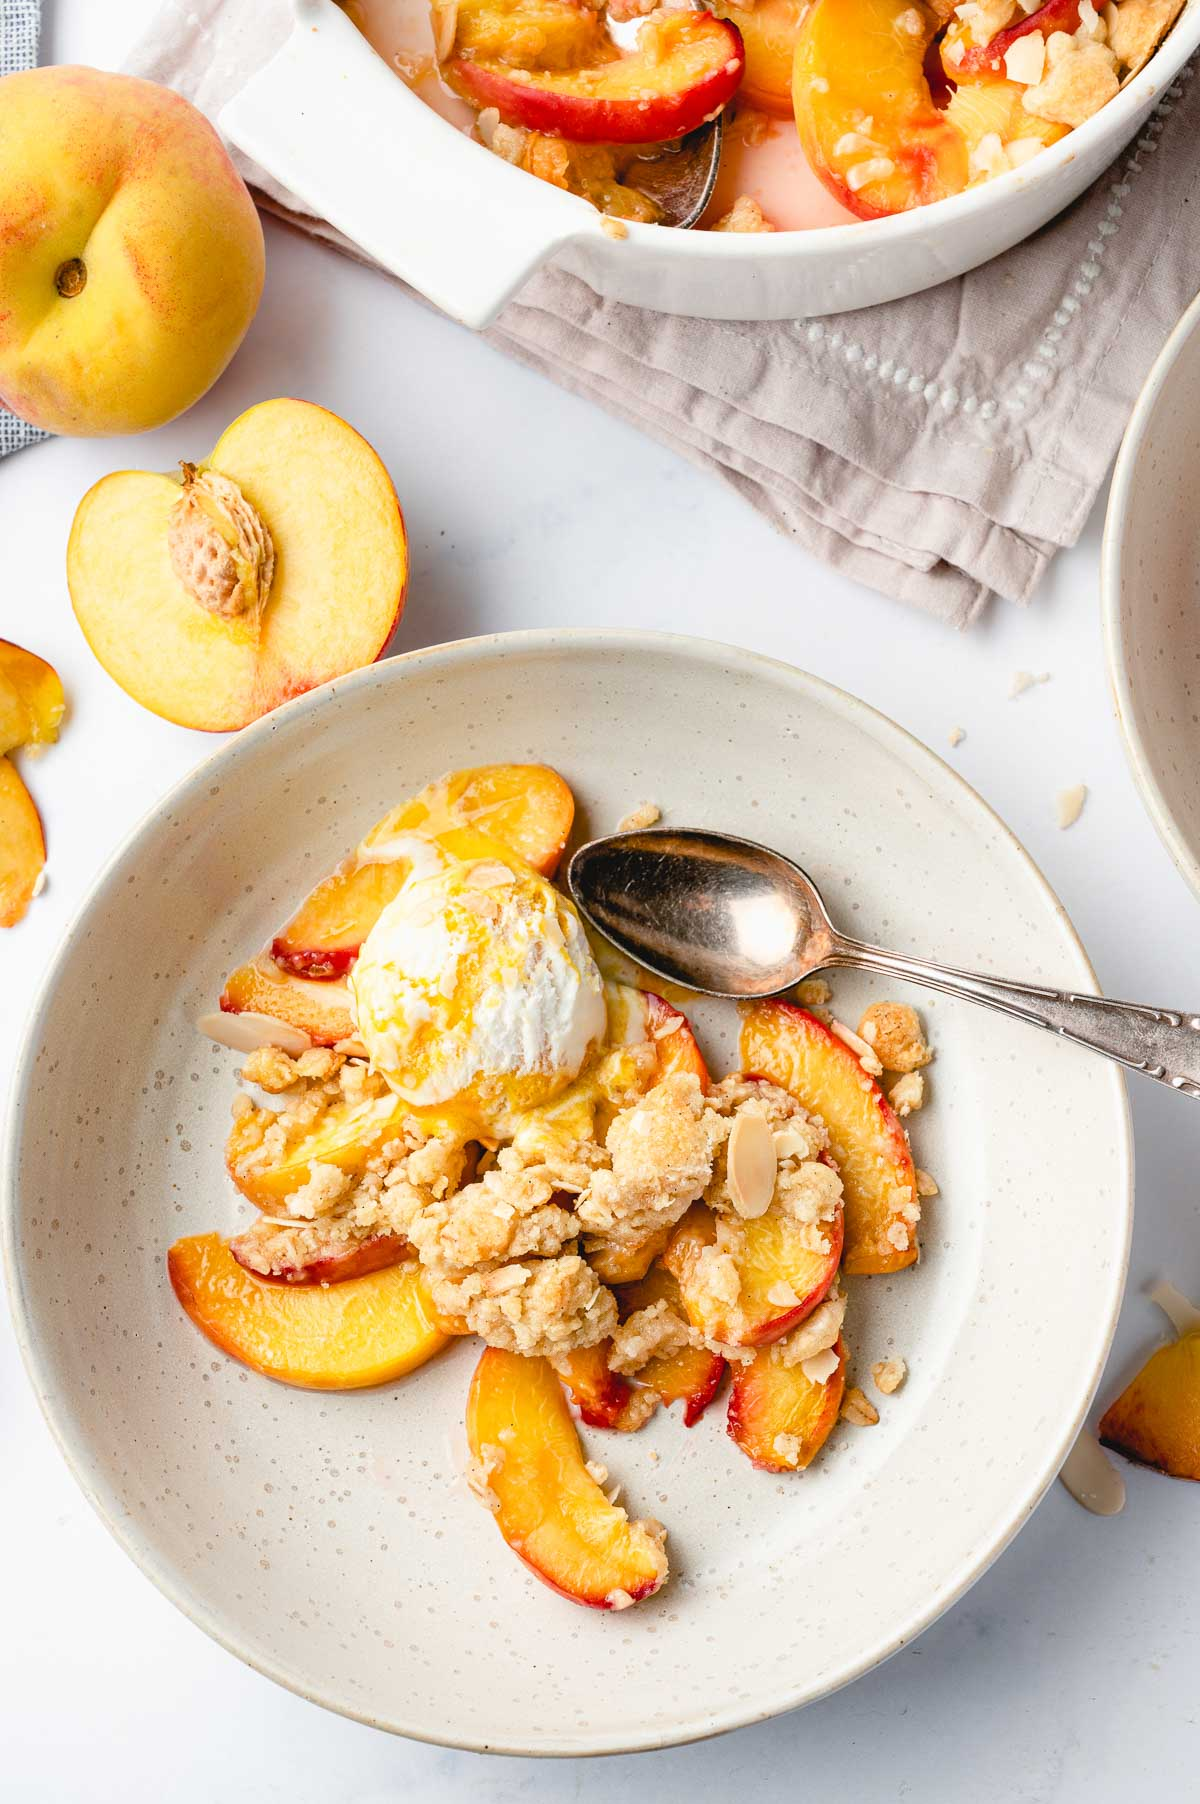 Top down shot of a plate with peaches, topping, and ice cream